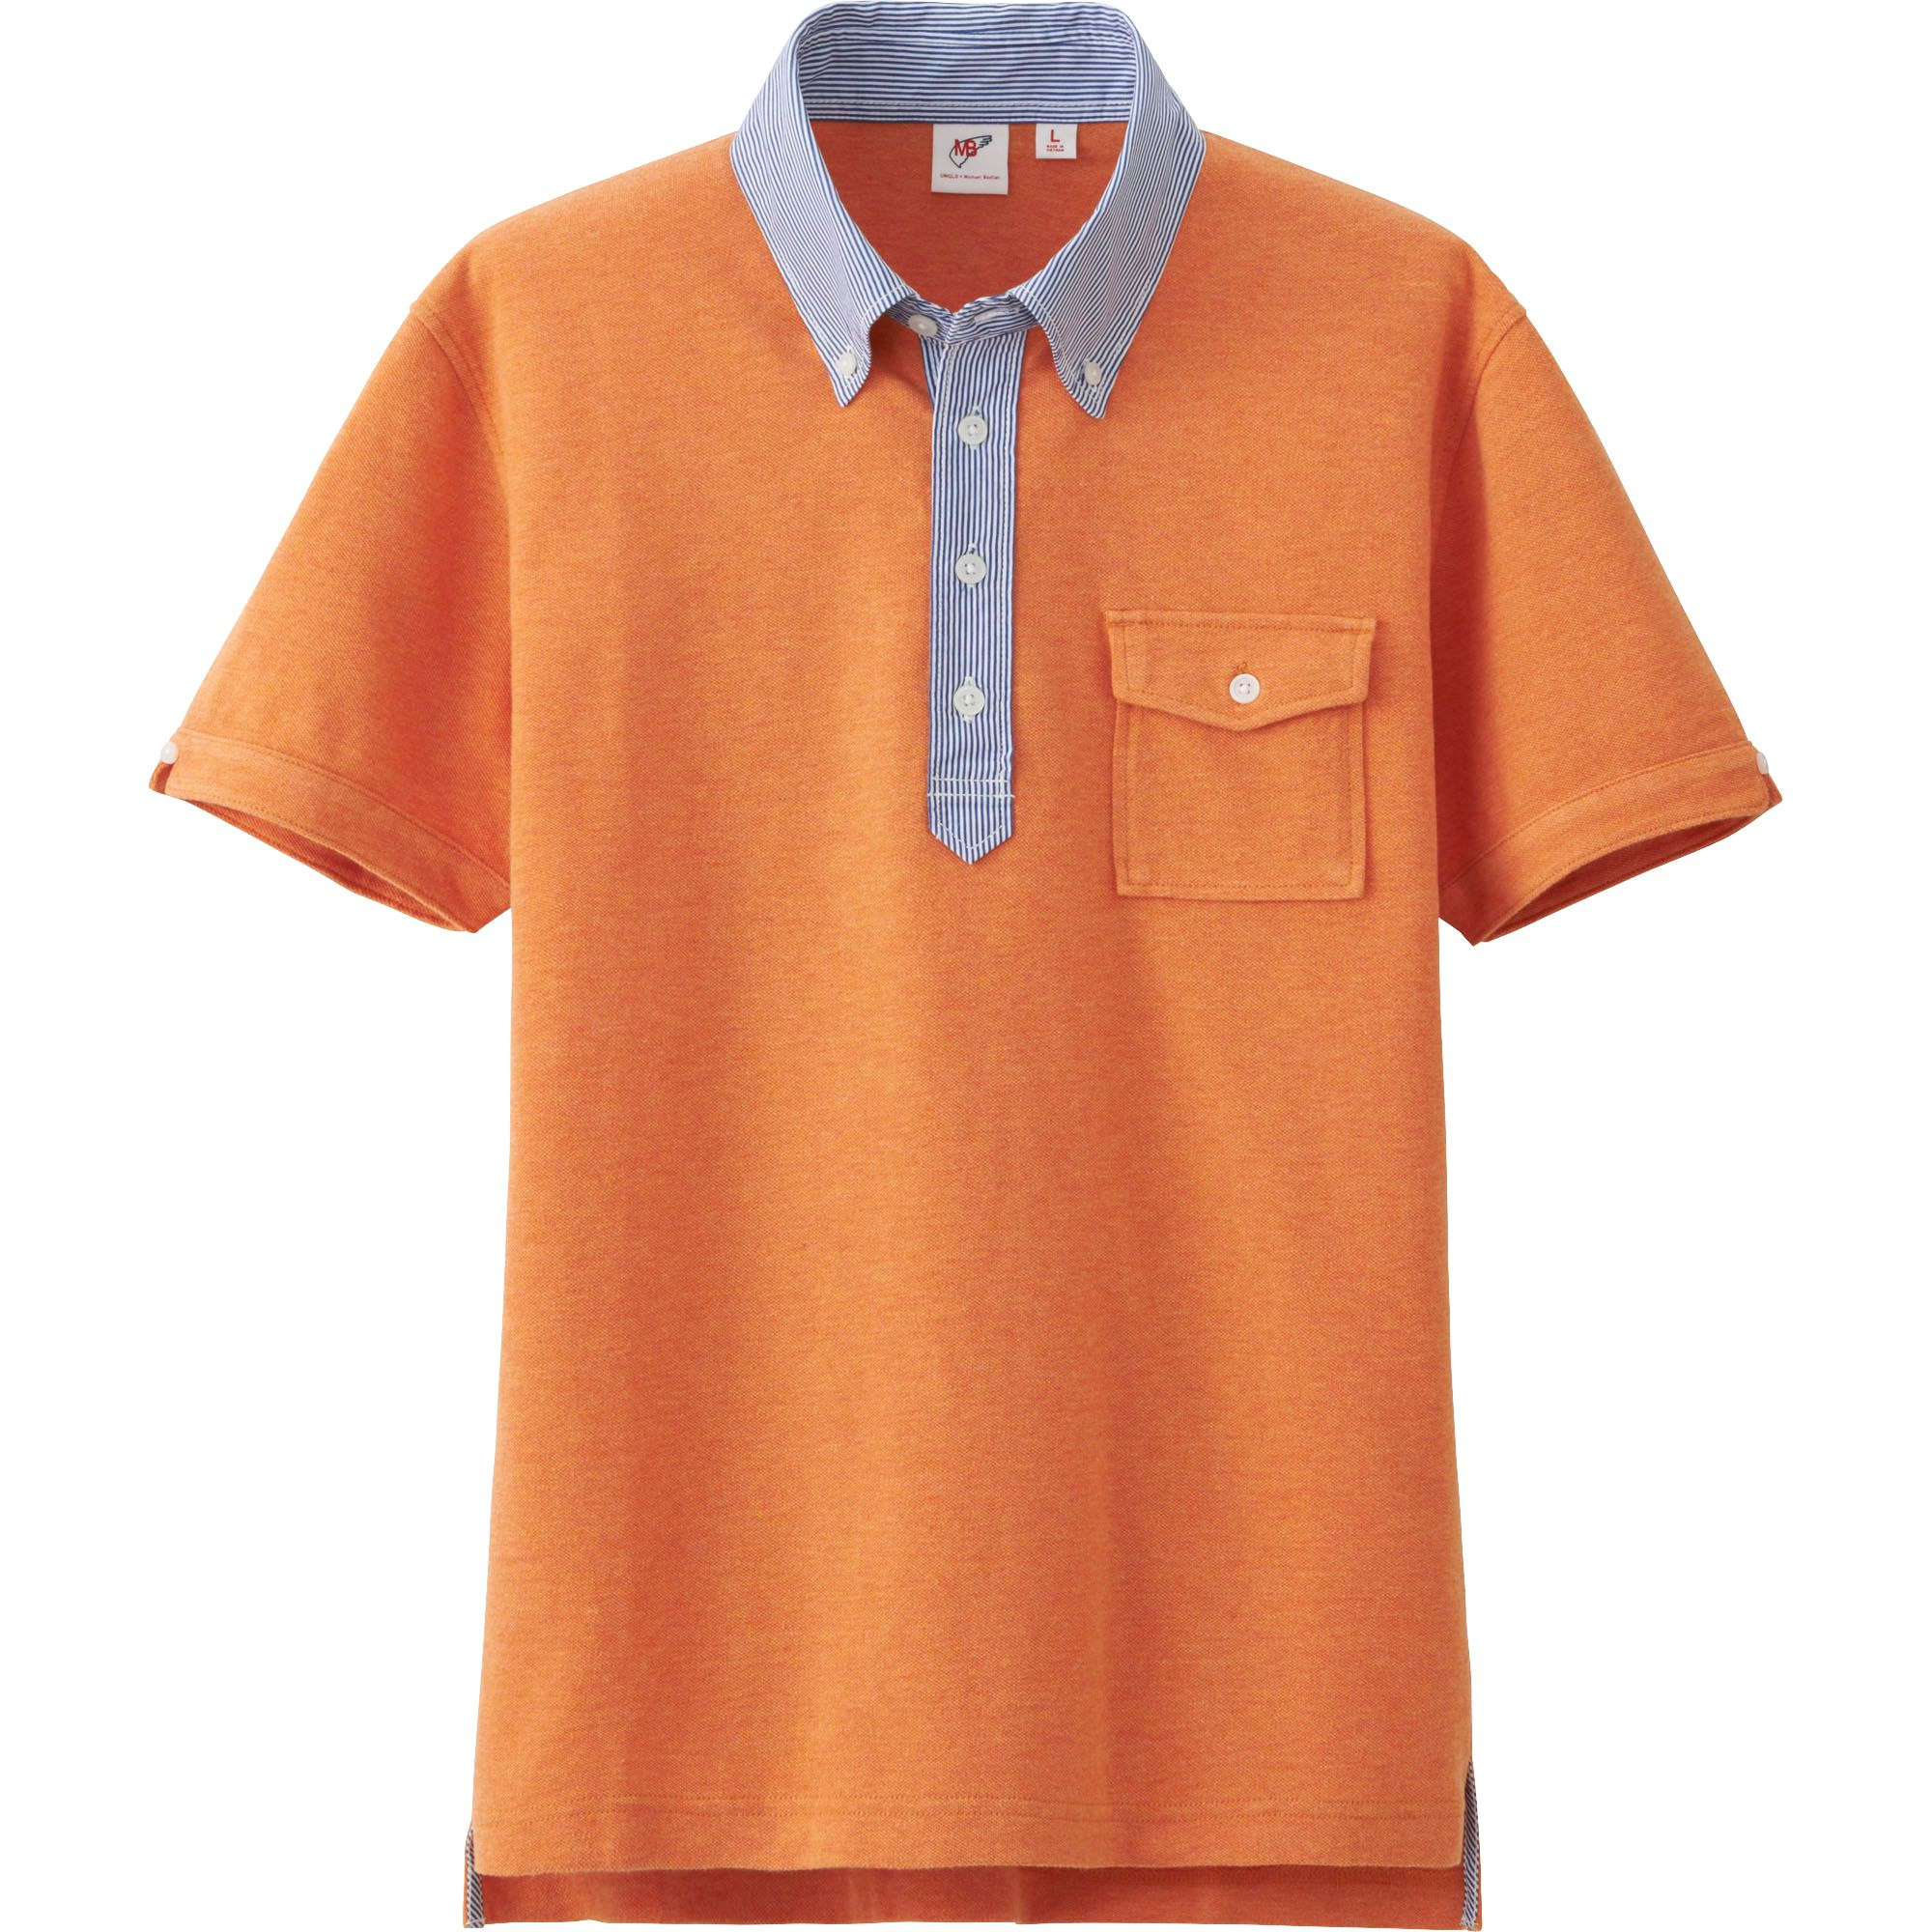 Uniqlo men washed short sleeve polo shirt by mb in orange for Orange polo shirt mens